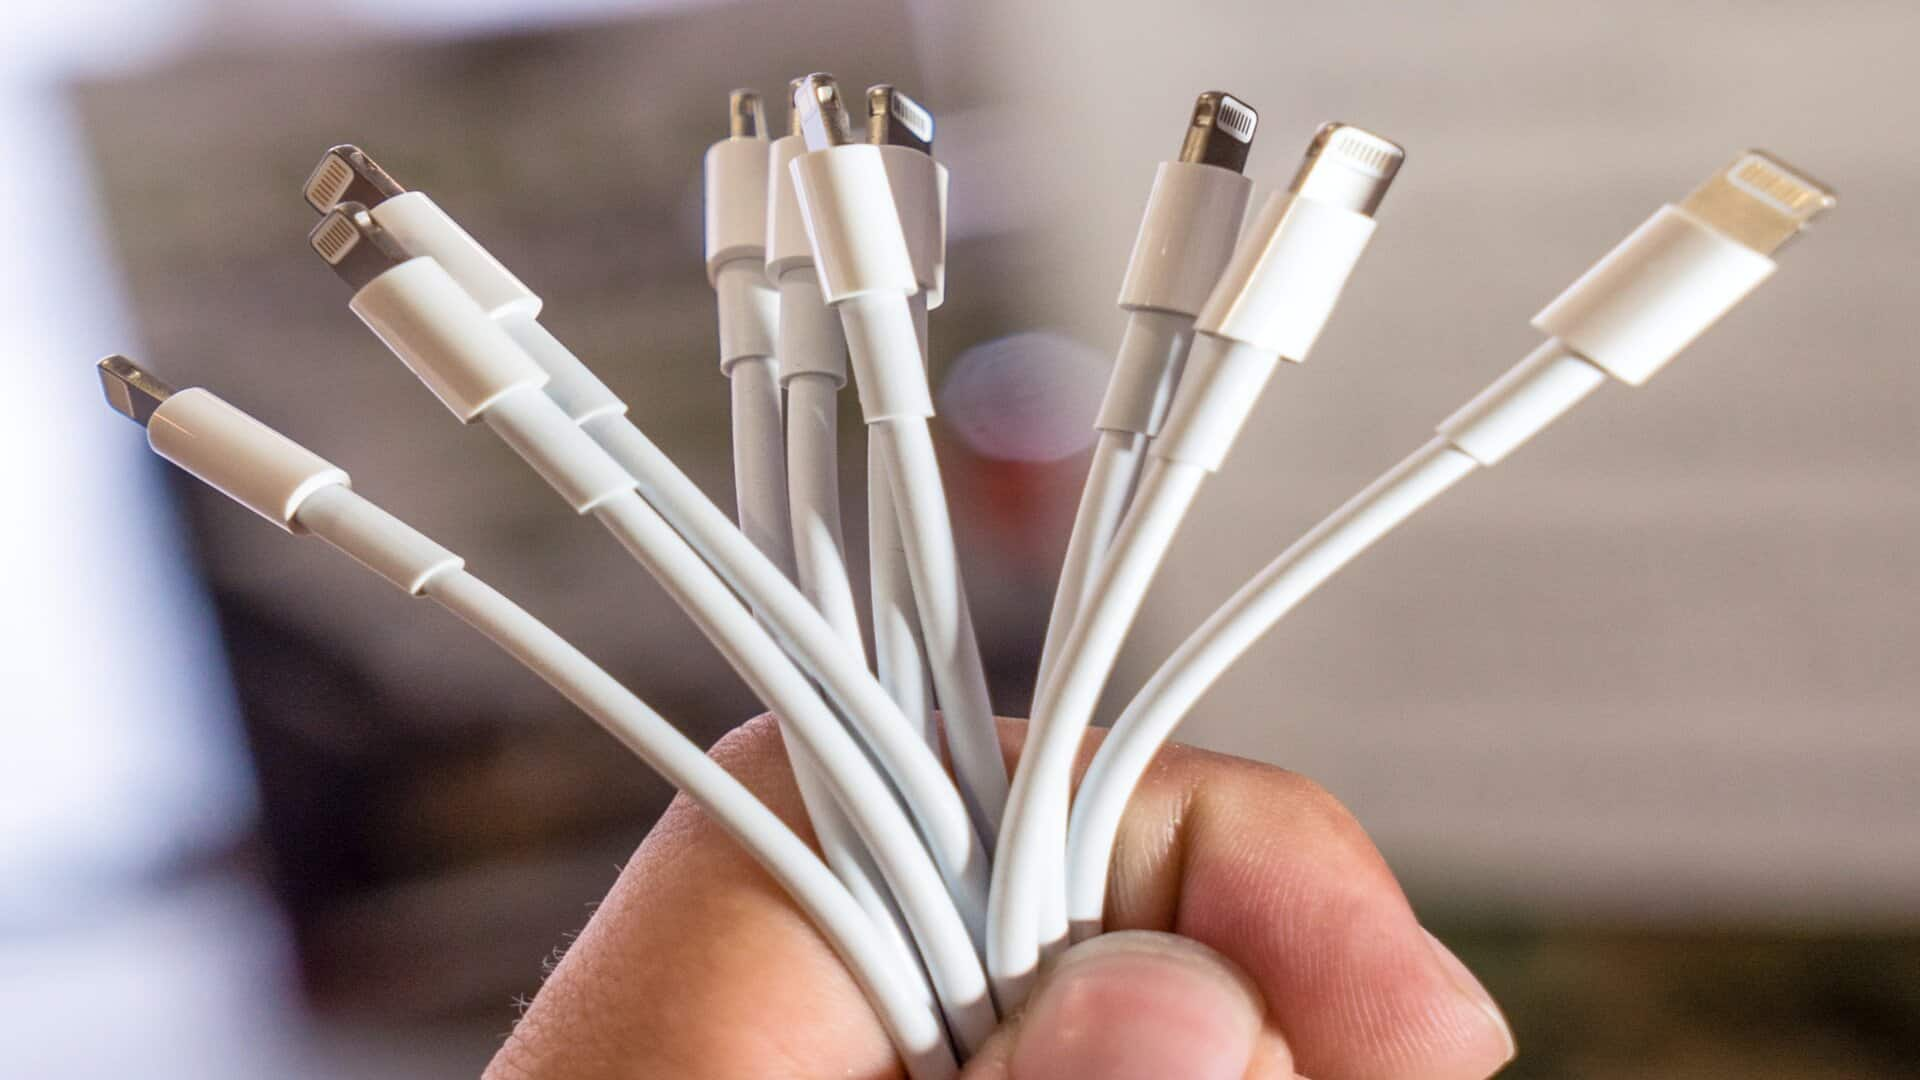 EU new law for common charger for smartphones to impact iPhone